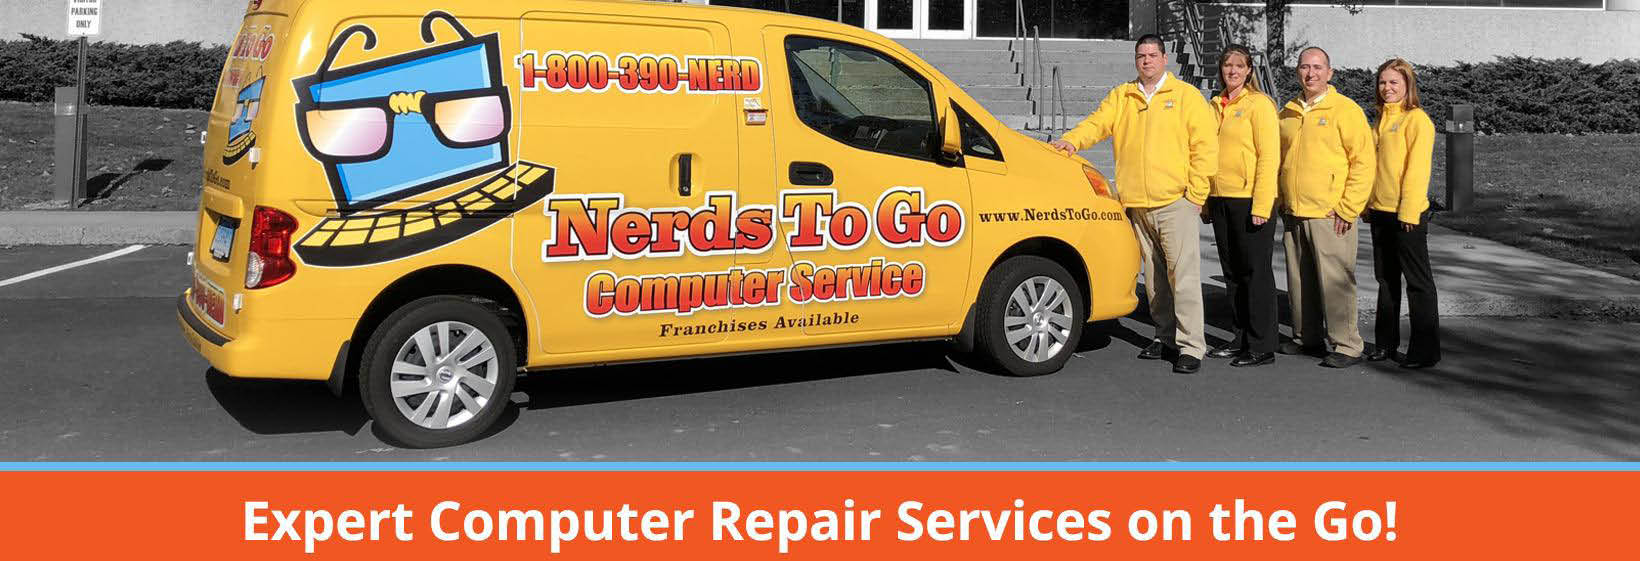 Nerds to Go main banner image - Bellevue, WA - computer services on the go